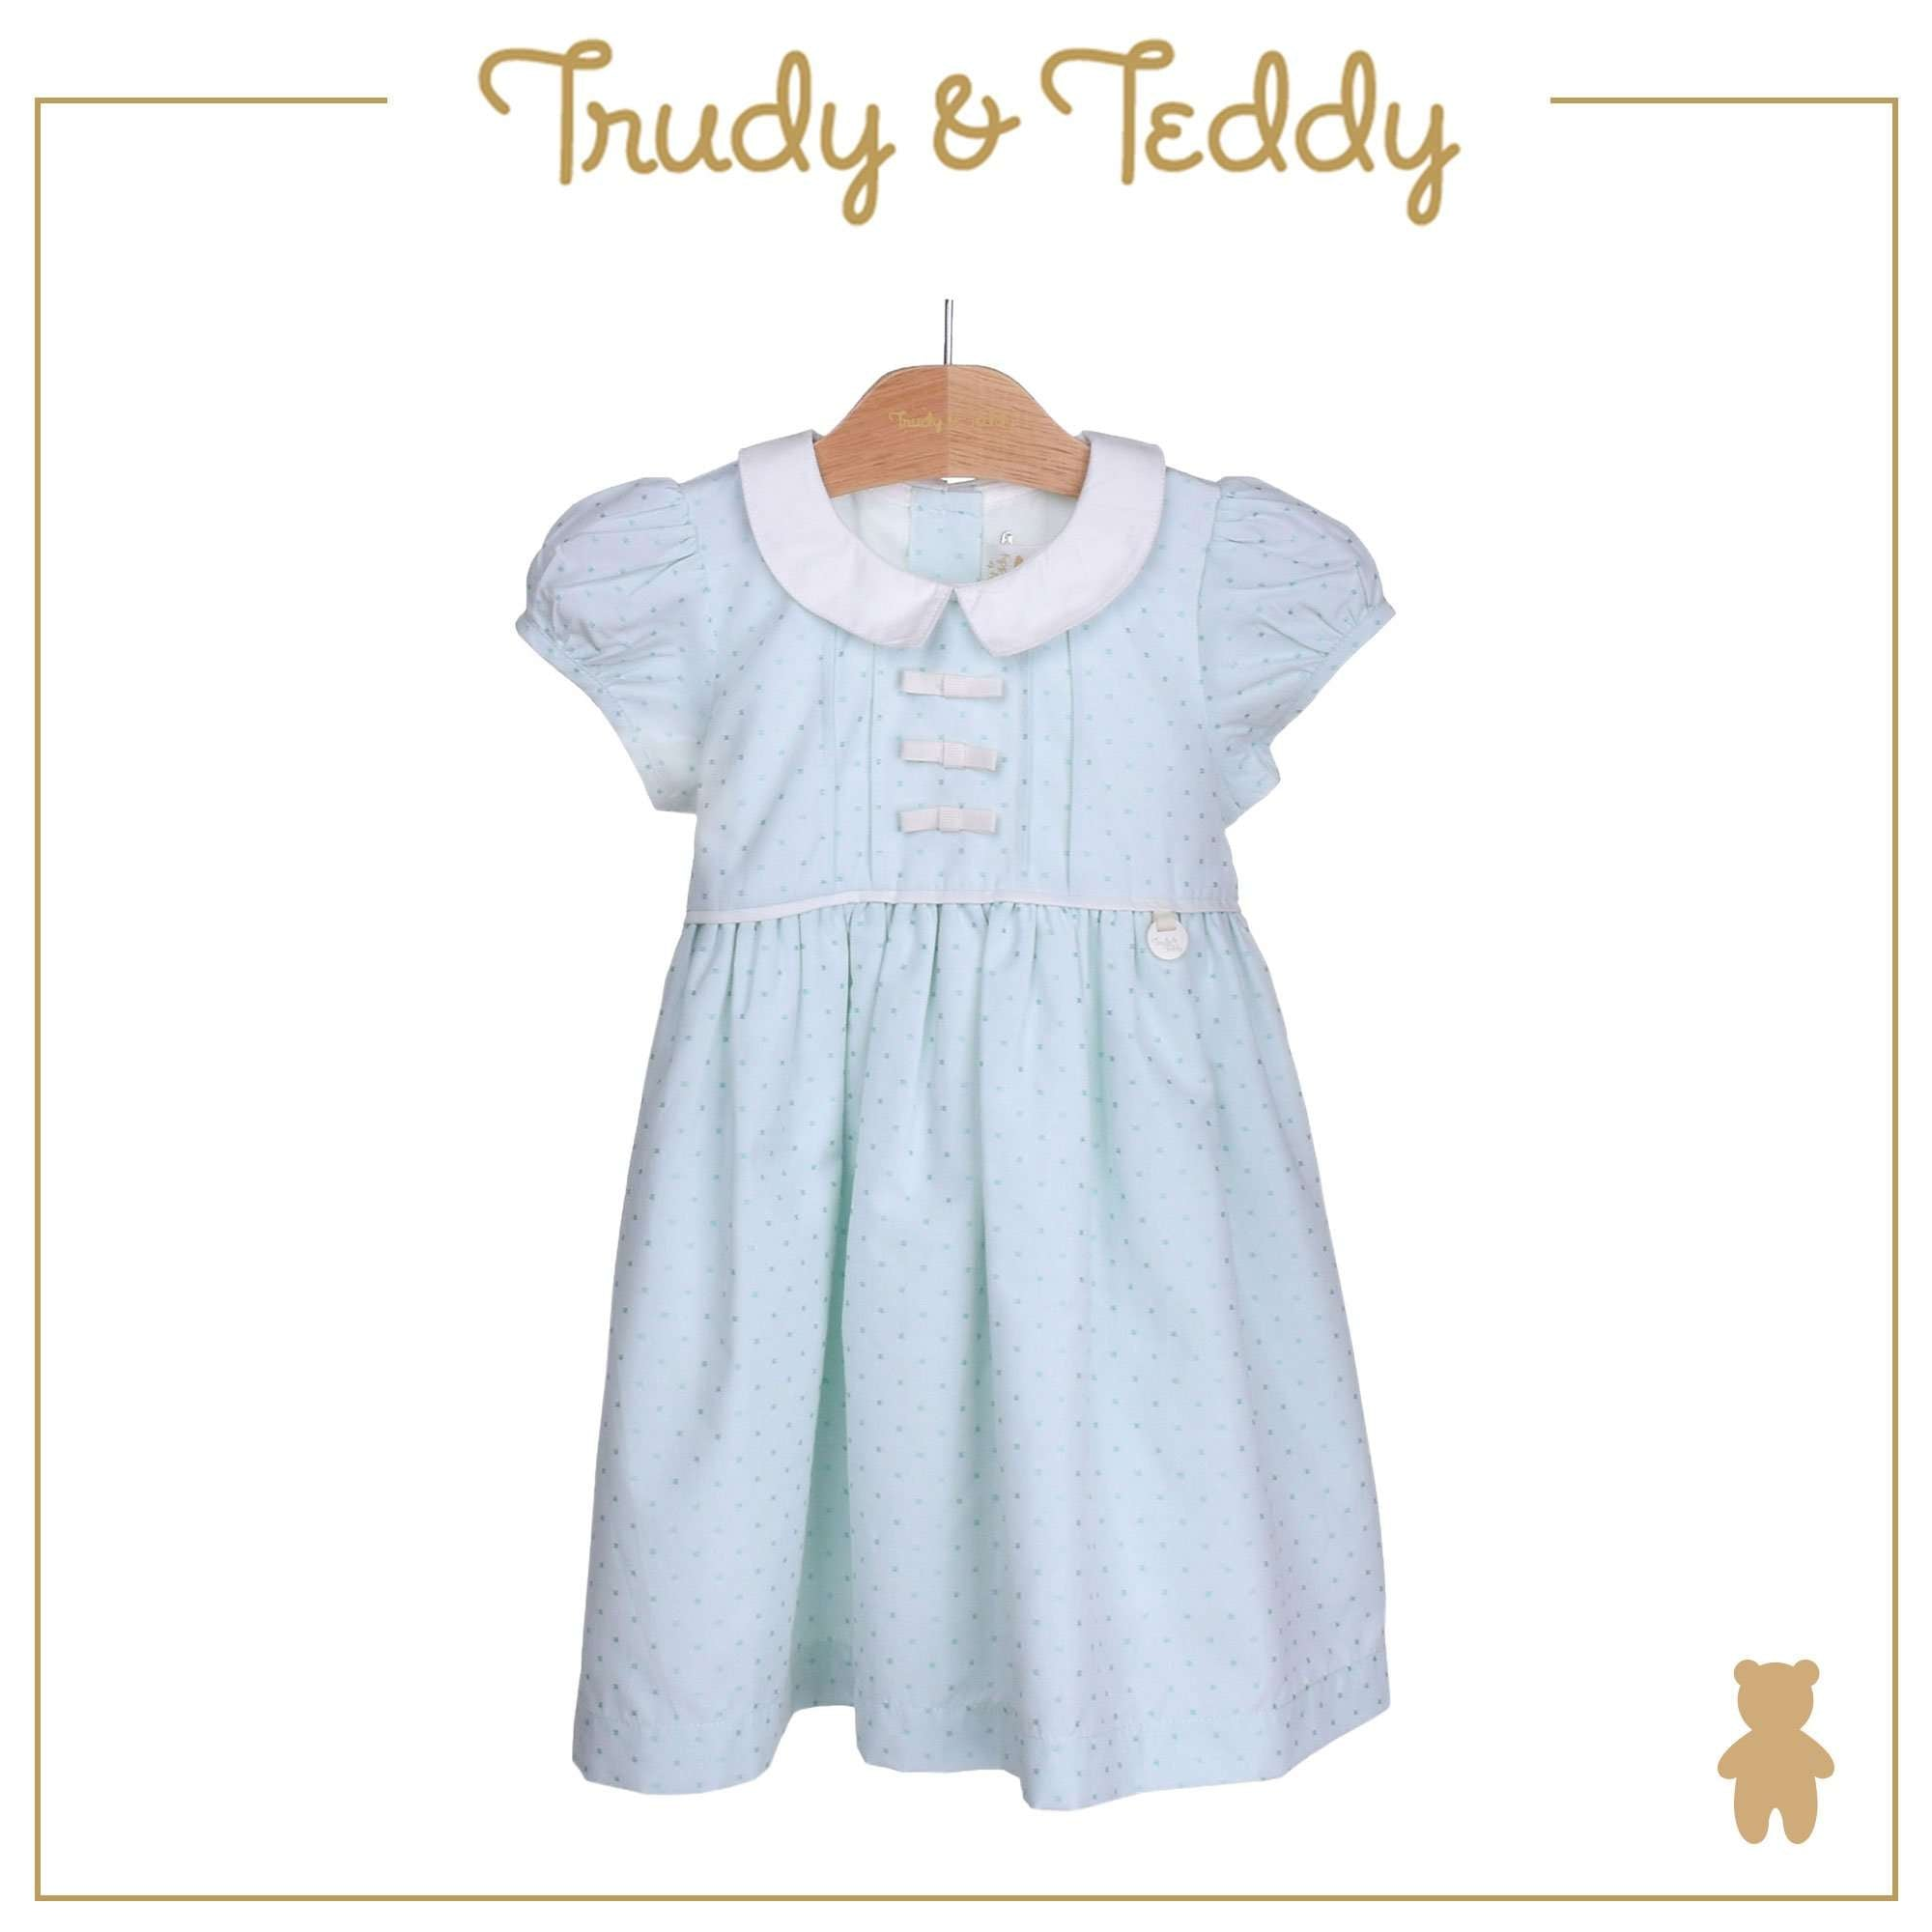 Trudy & Teddy Toddler Girl Woven Short Sleeve Dress 815168-312 : Buy Trudy & Teddy online at CMG.MY